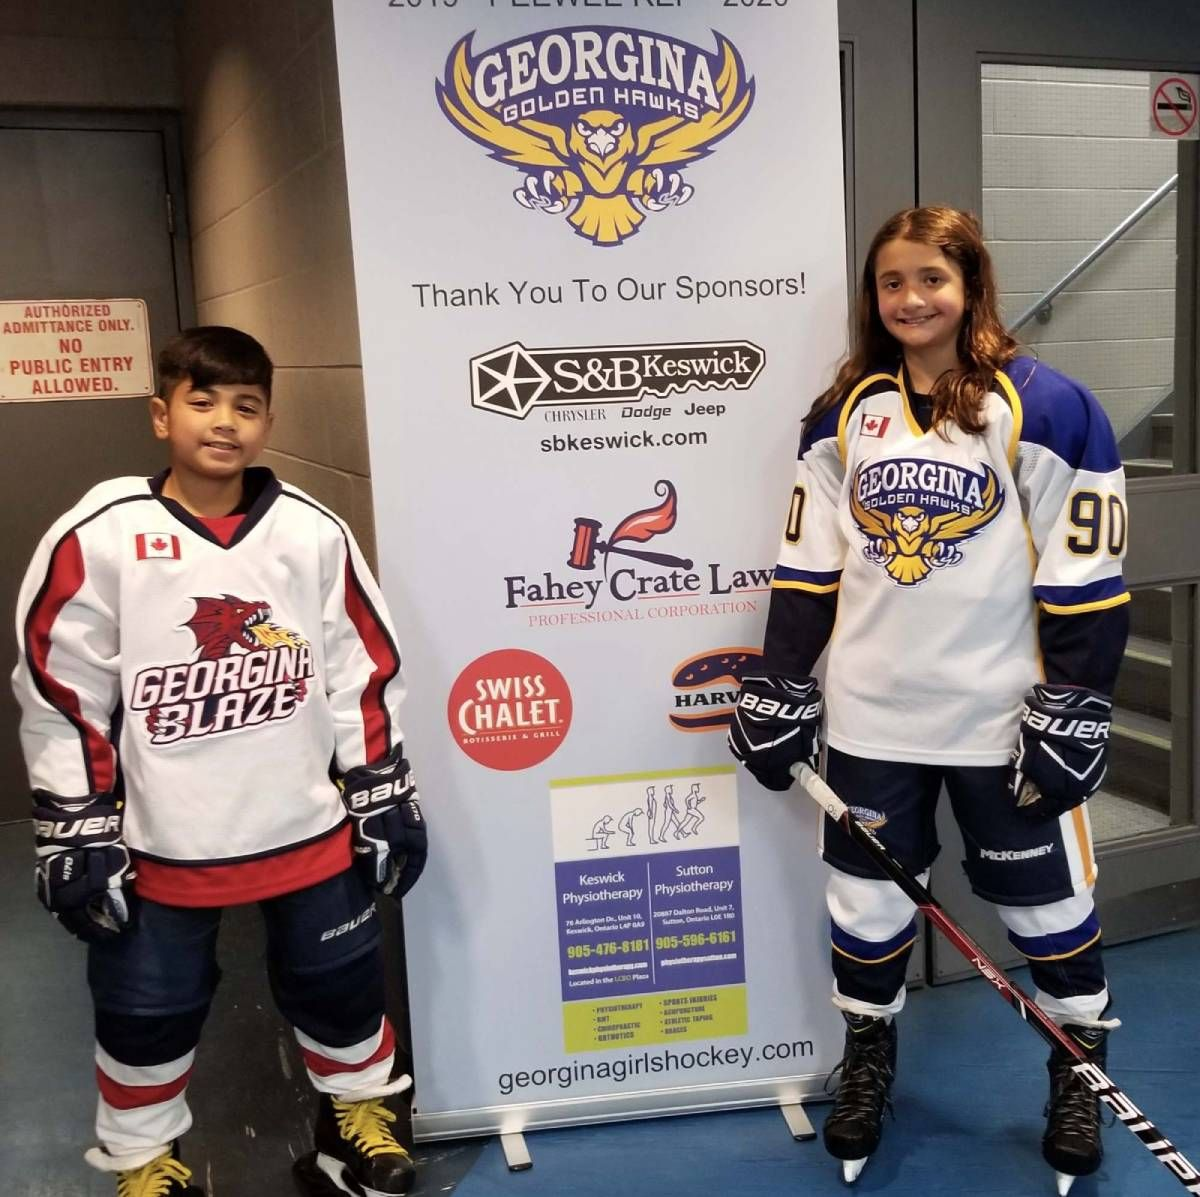 2 kids wearing ice hockey dress